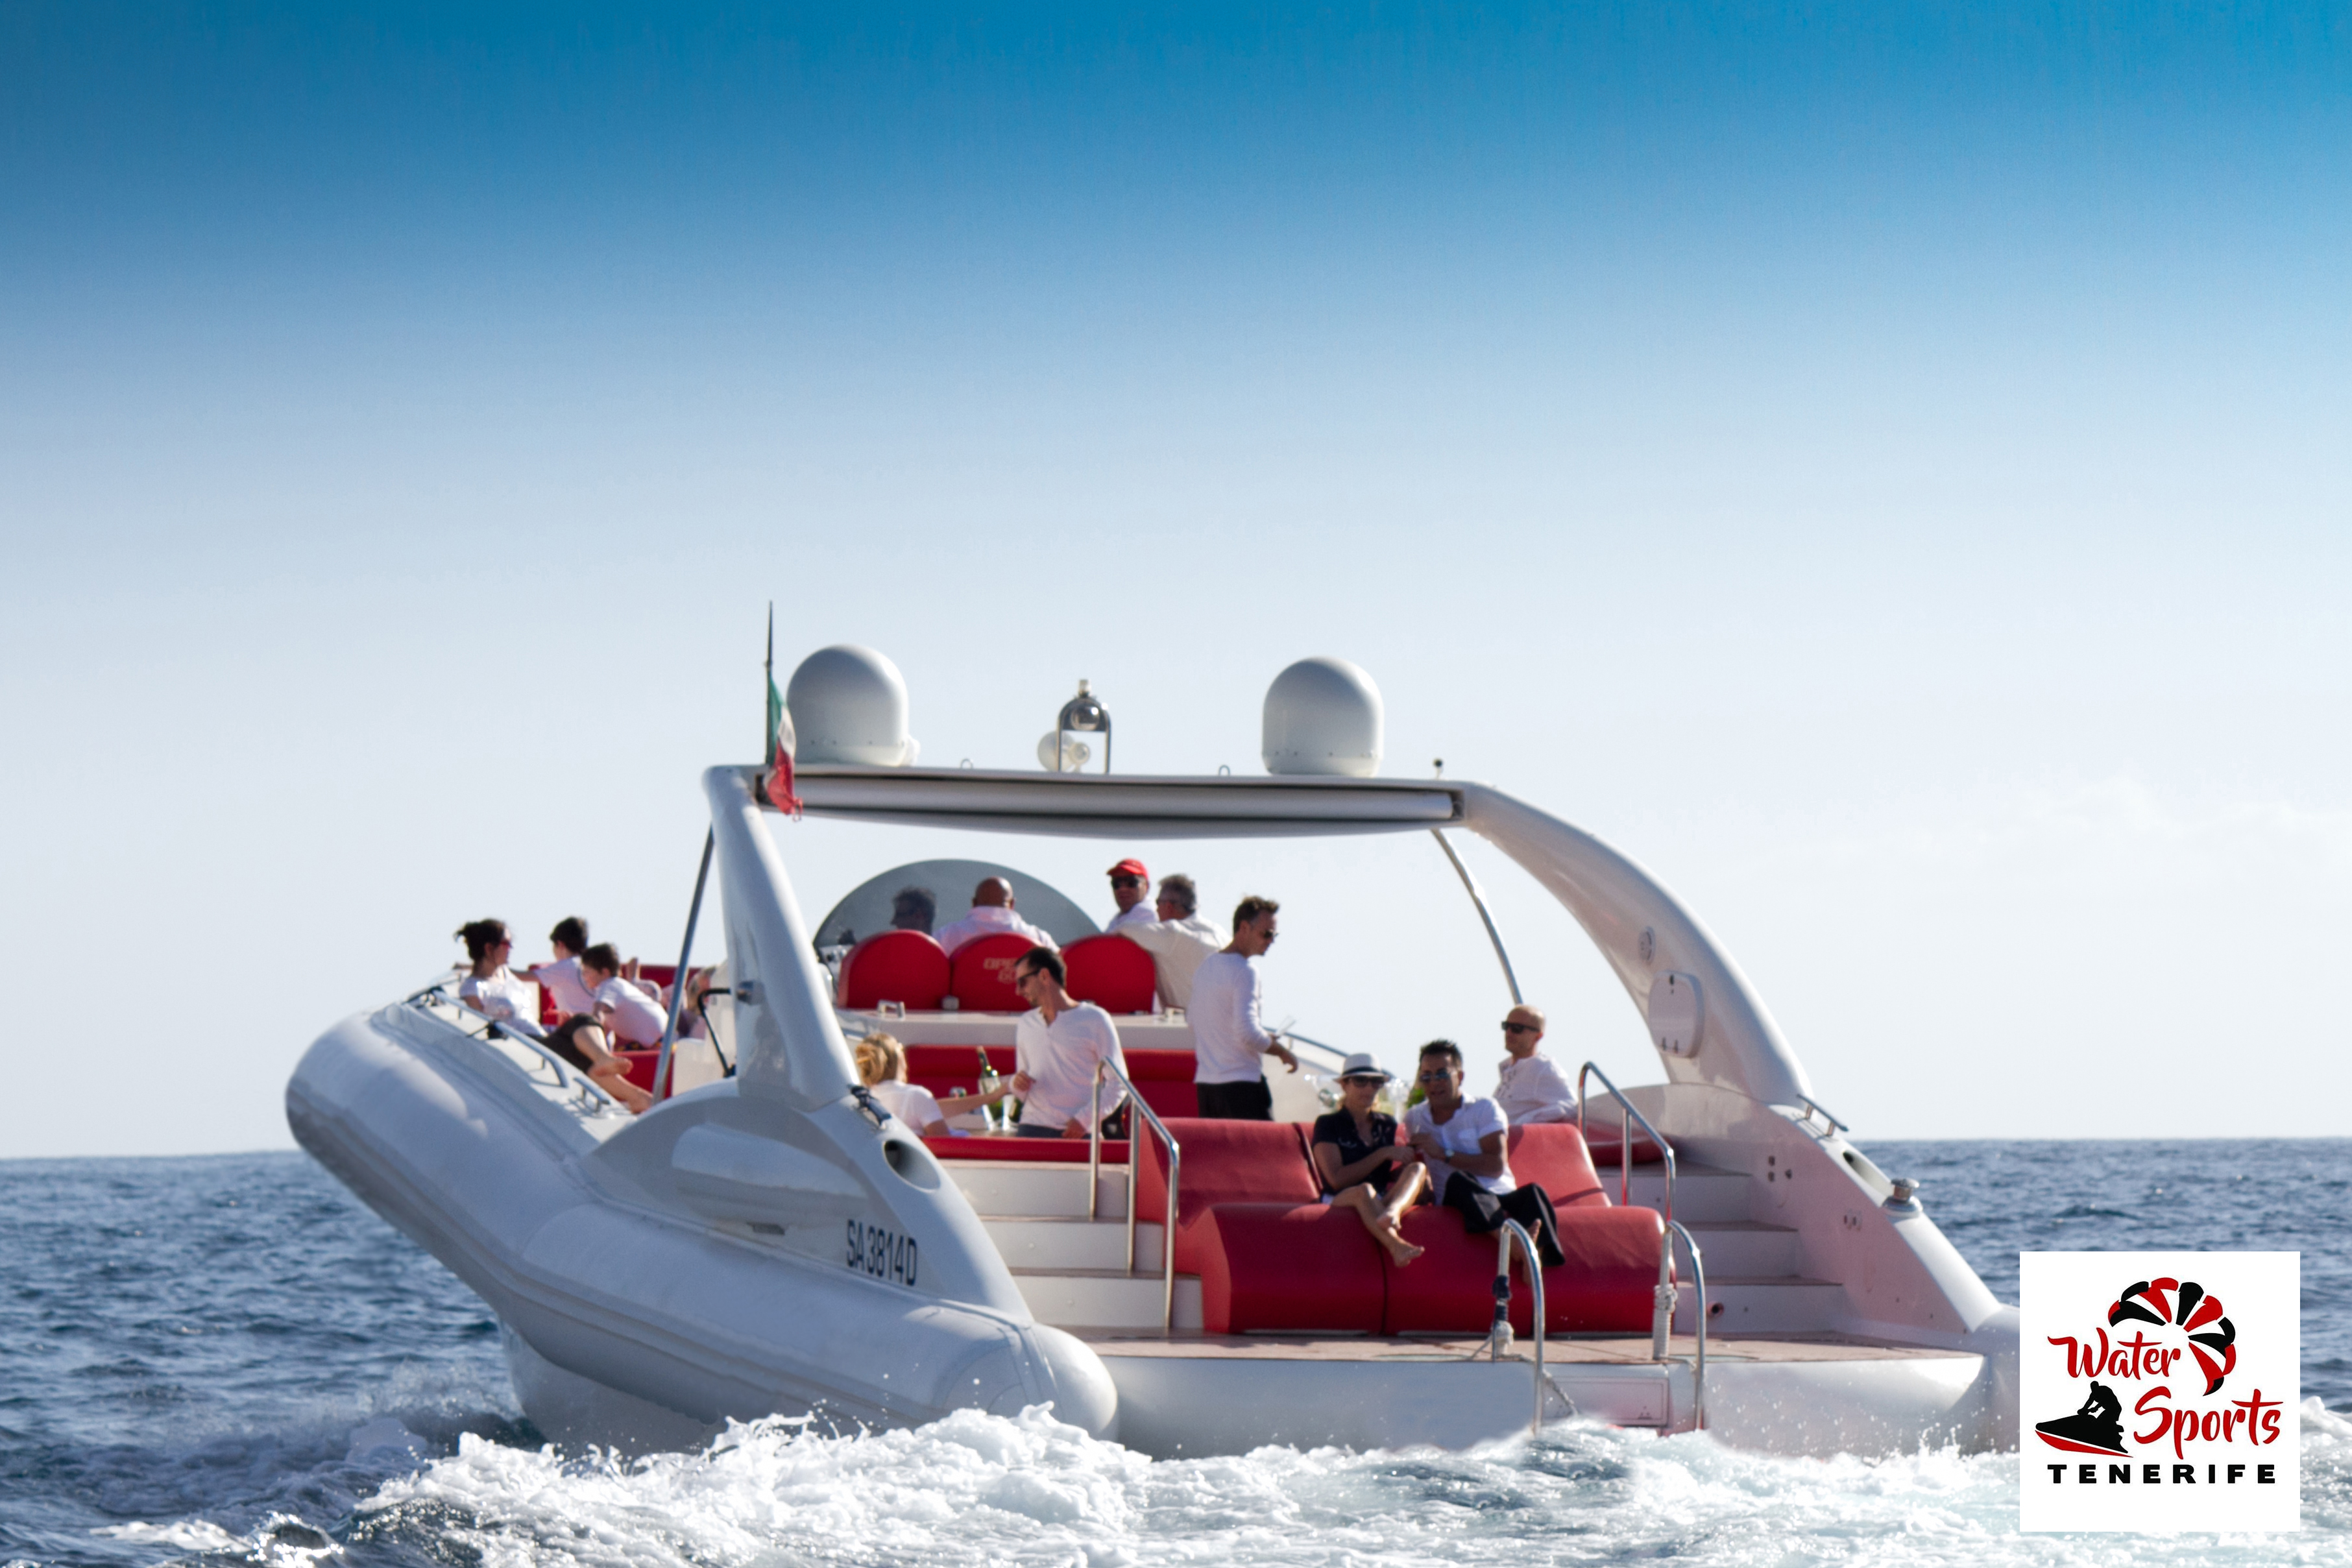 sea riders excursions speedboats in fañabe el medano water sports and activities